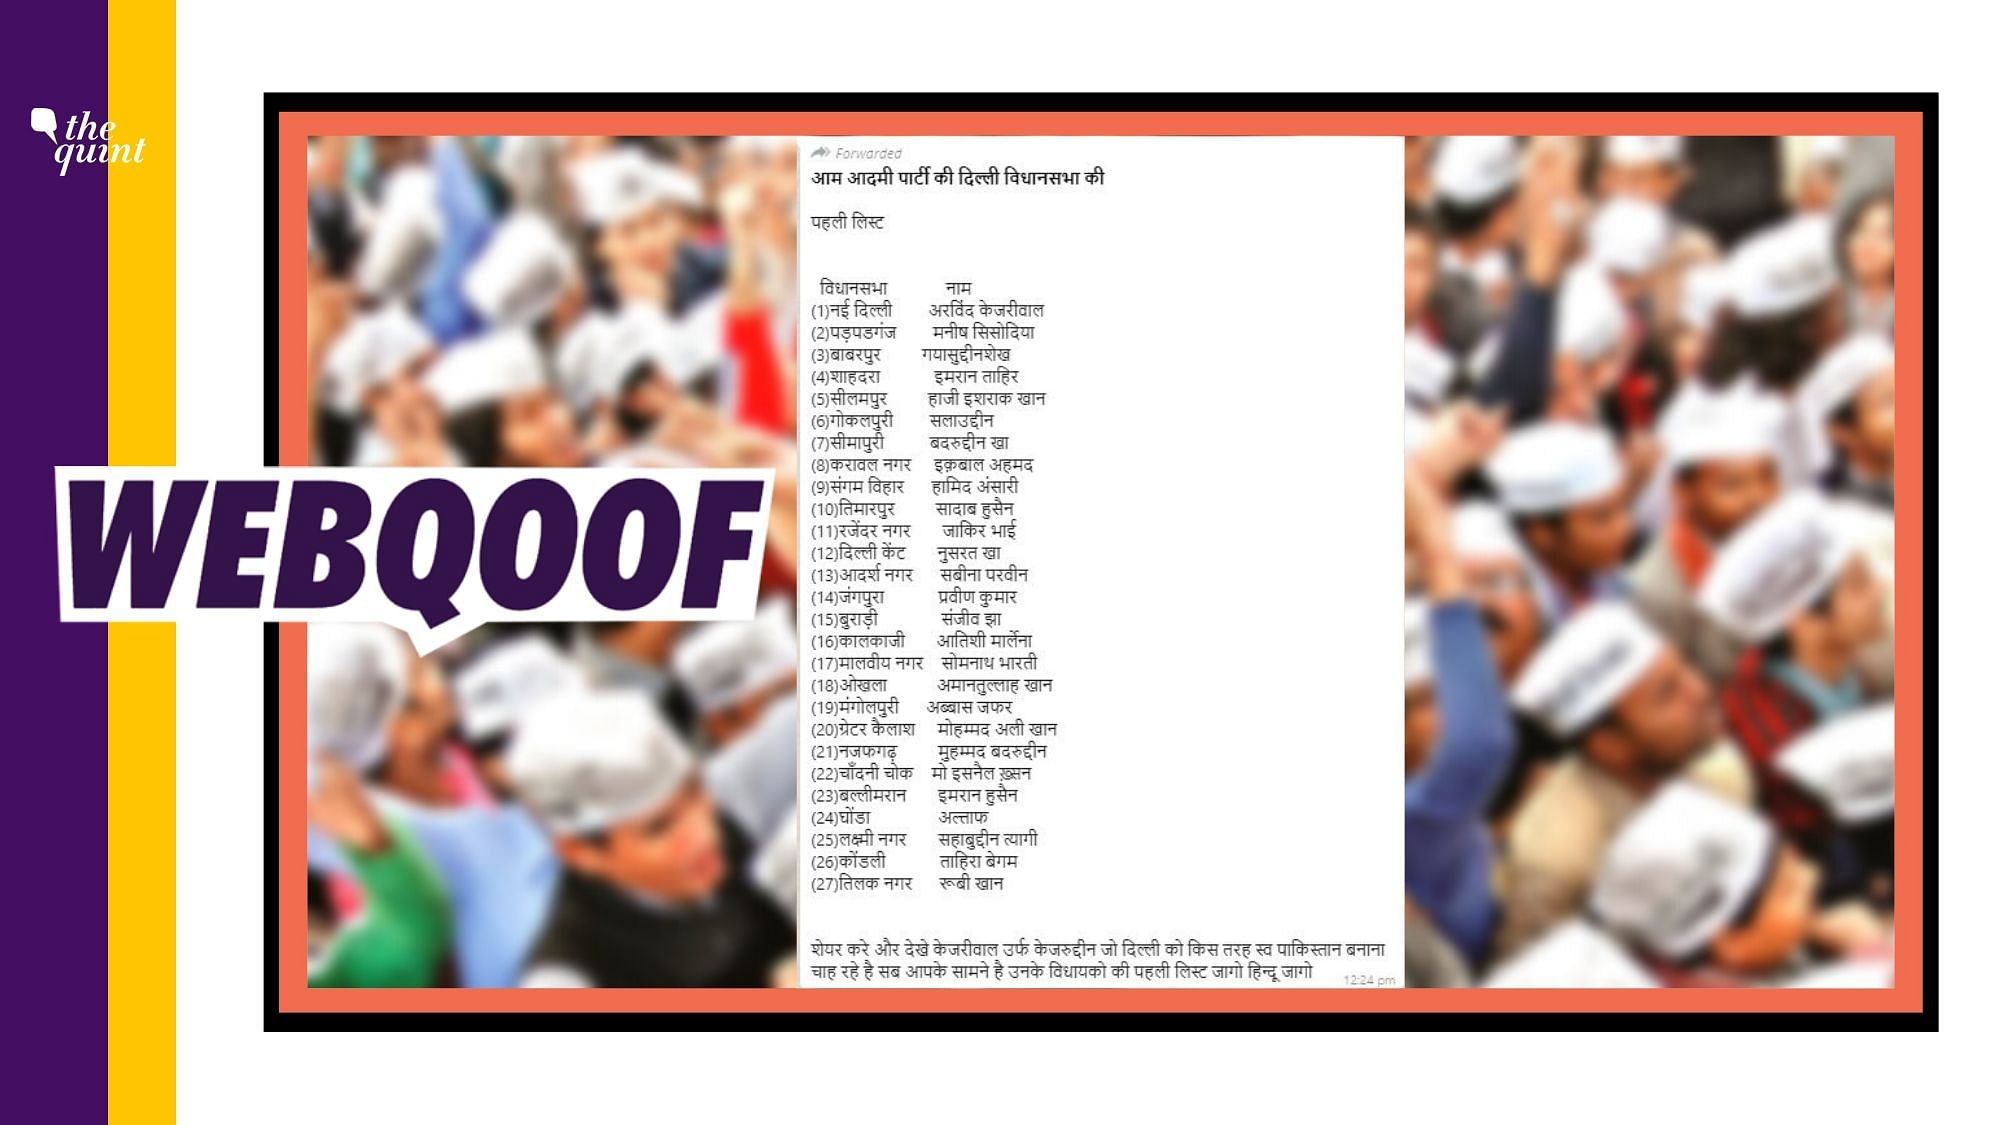 Fake AAP Candidate List for Delhi Polls Shared With Communal Angle